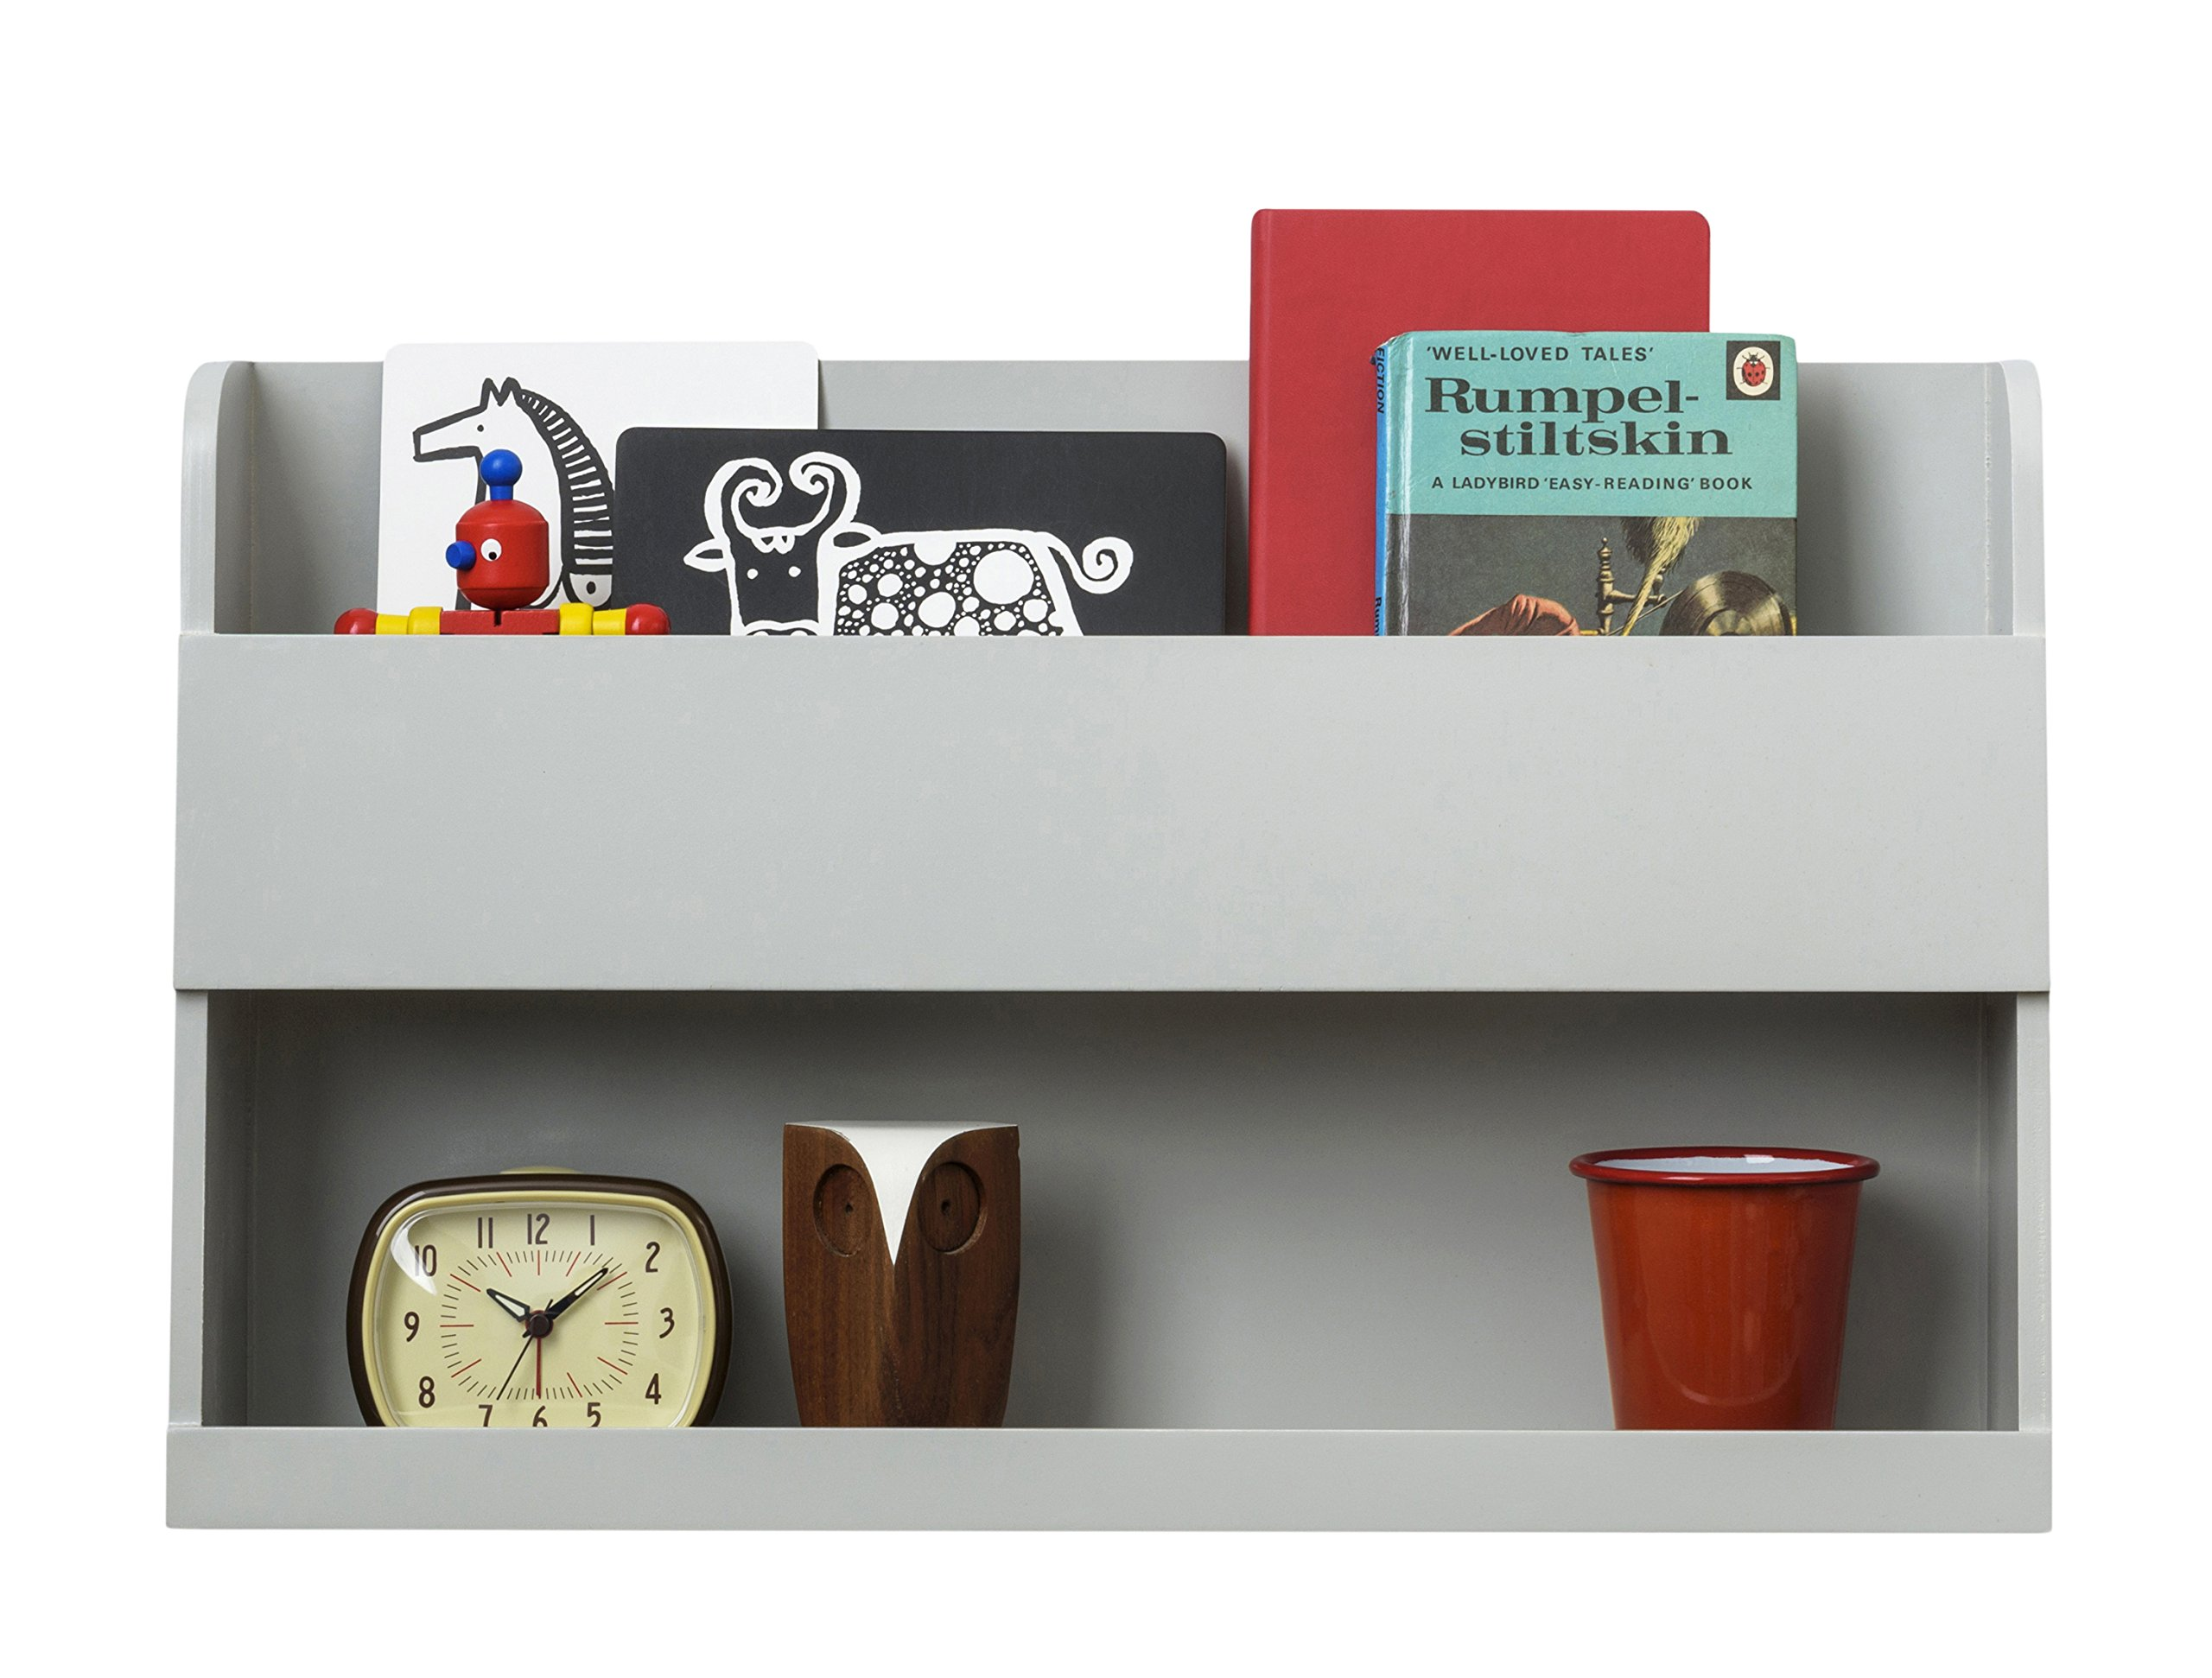 Tidy Books The Original Bunk Bed Buddy- Bunk Bed Shelf in Pale Grey - Wall Shelf for Bedside Table next to Bunk Beds and Cabin Beds - 13 x 20.9 x 4.7 IN